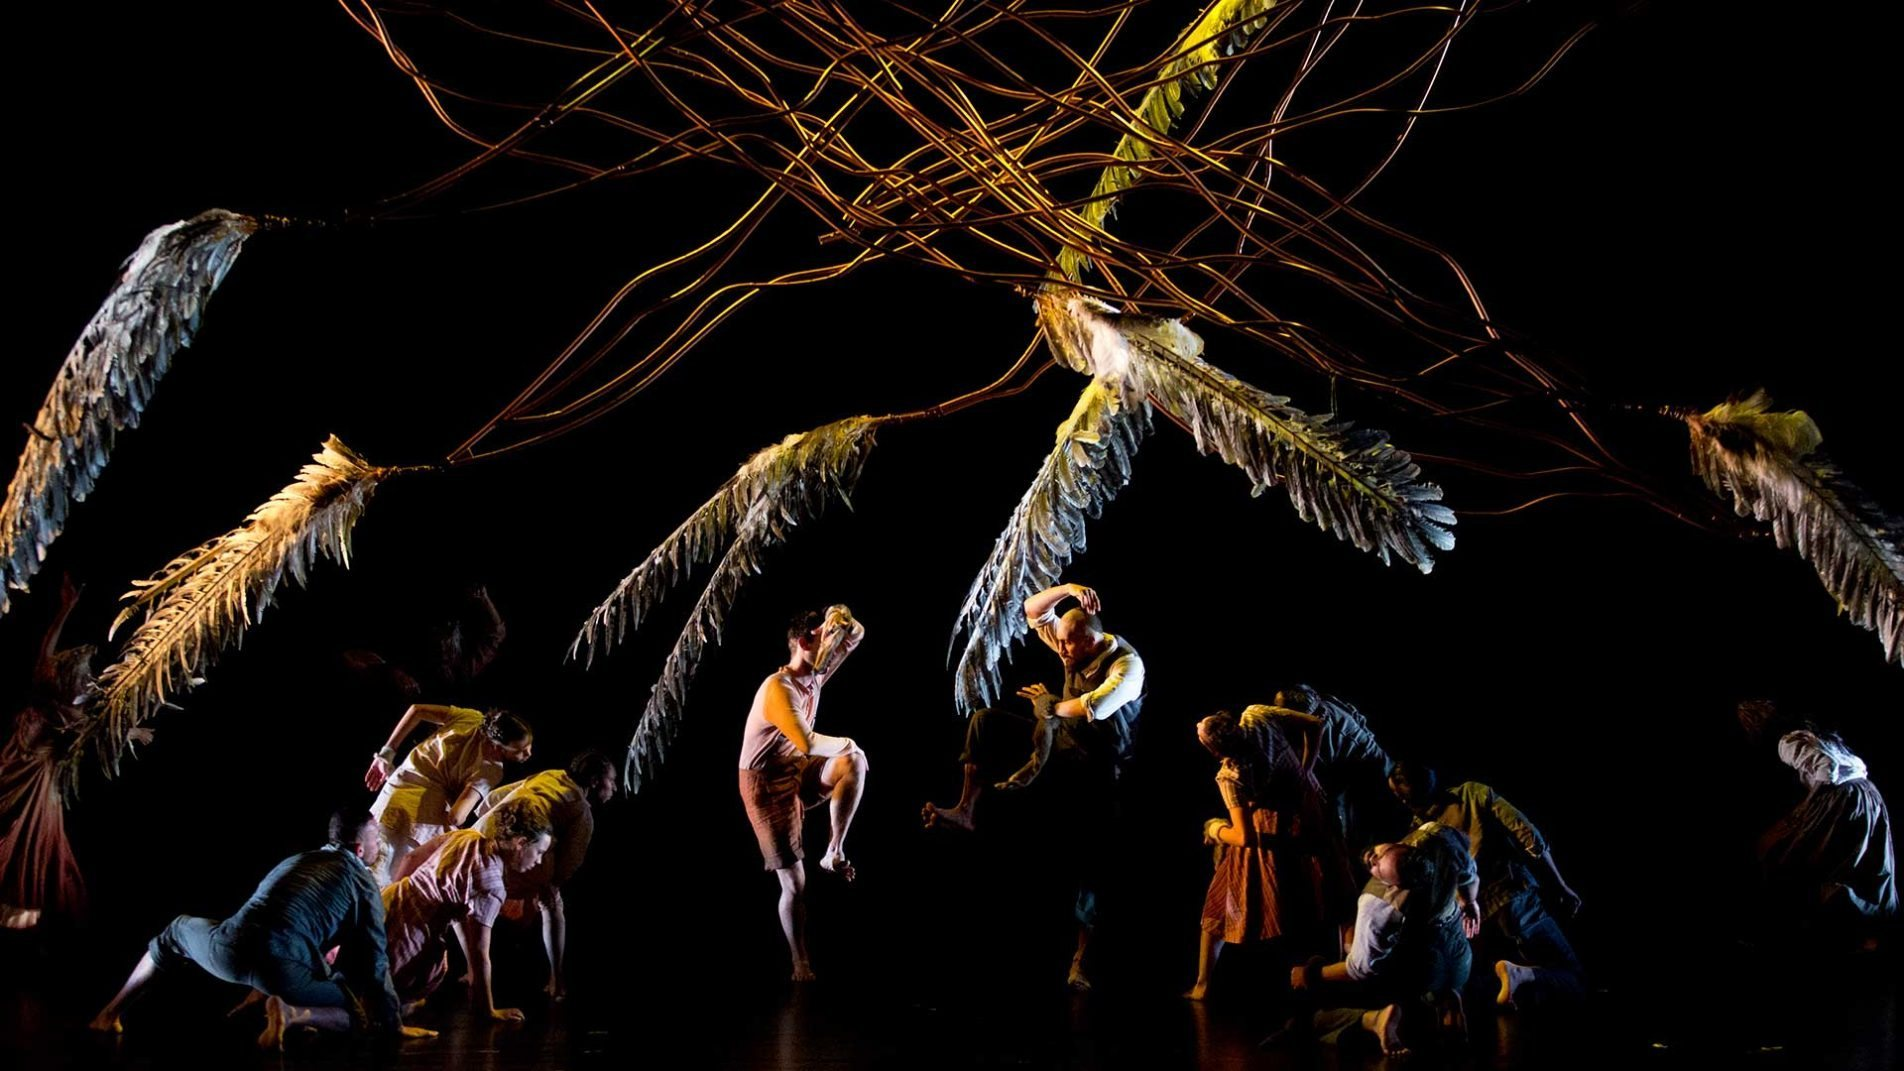 Bangarra Dance Company - OUR Land People Stories